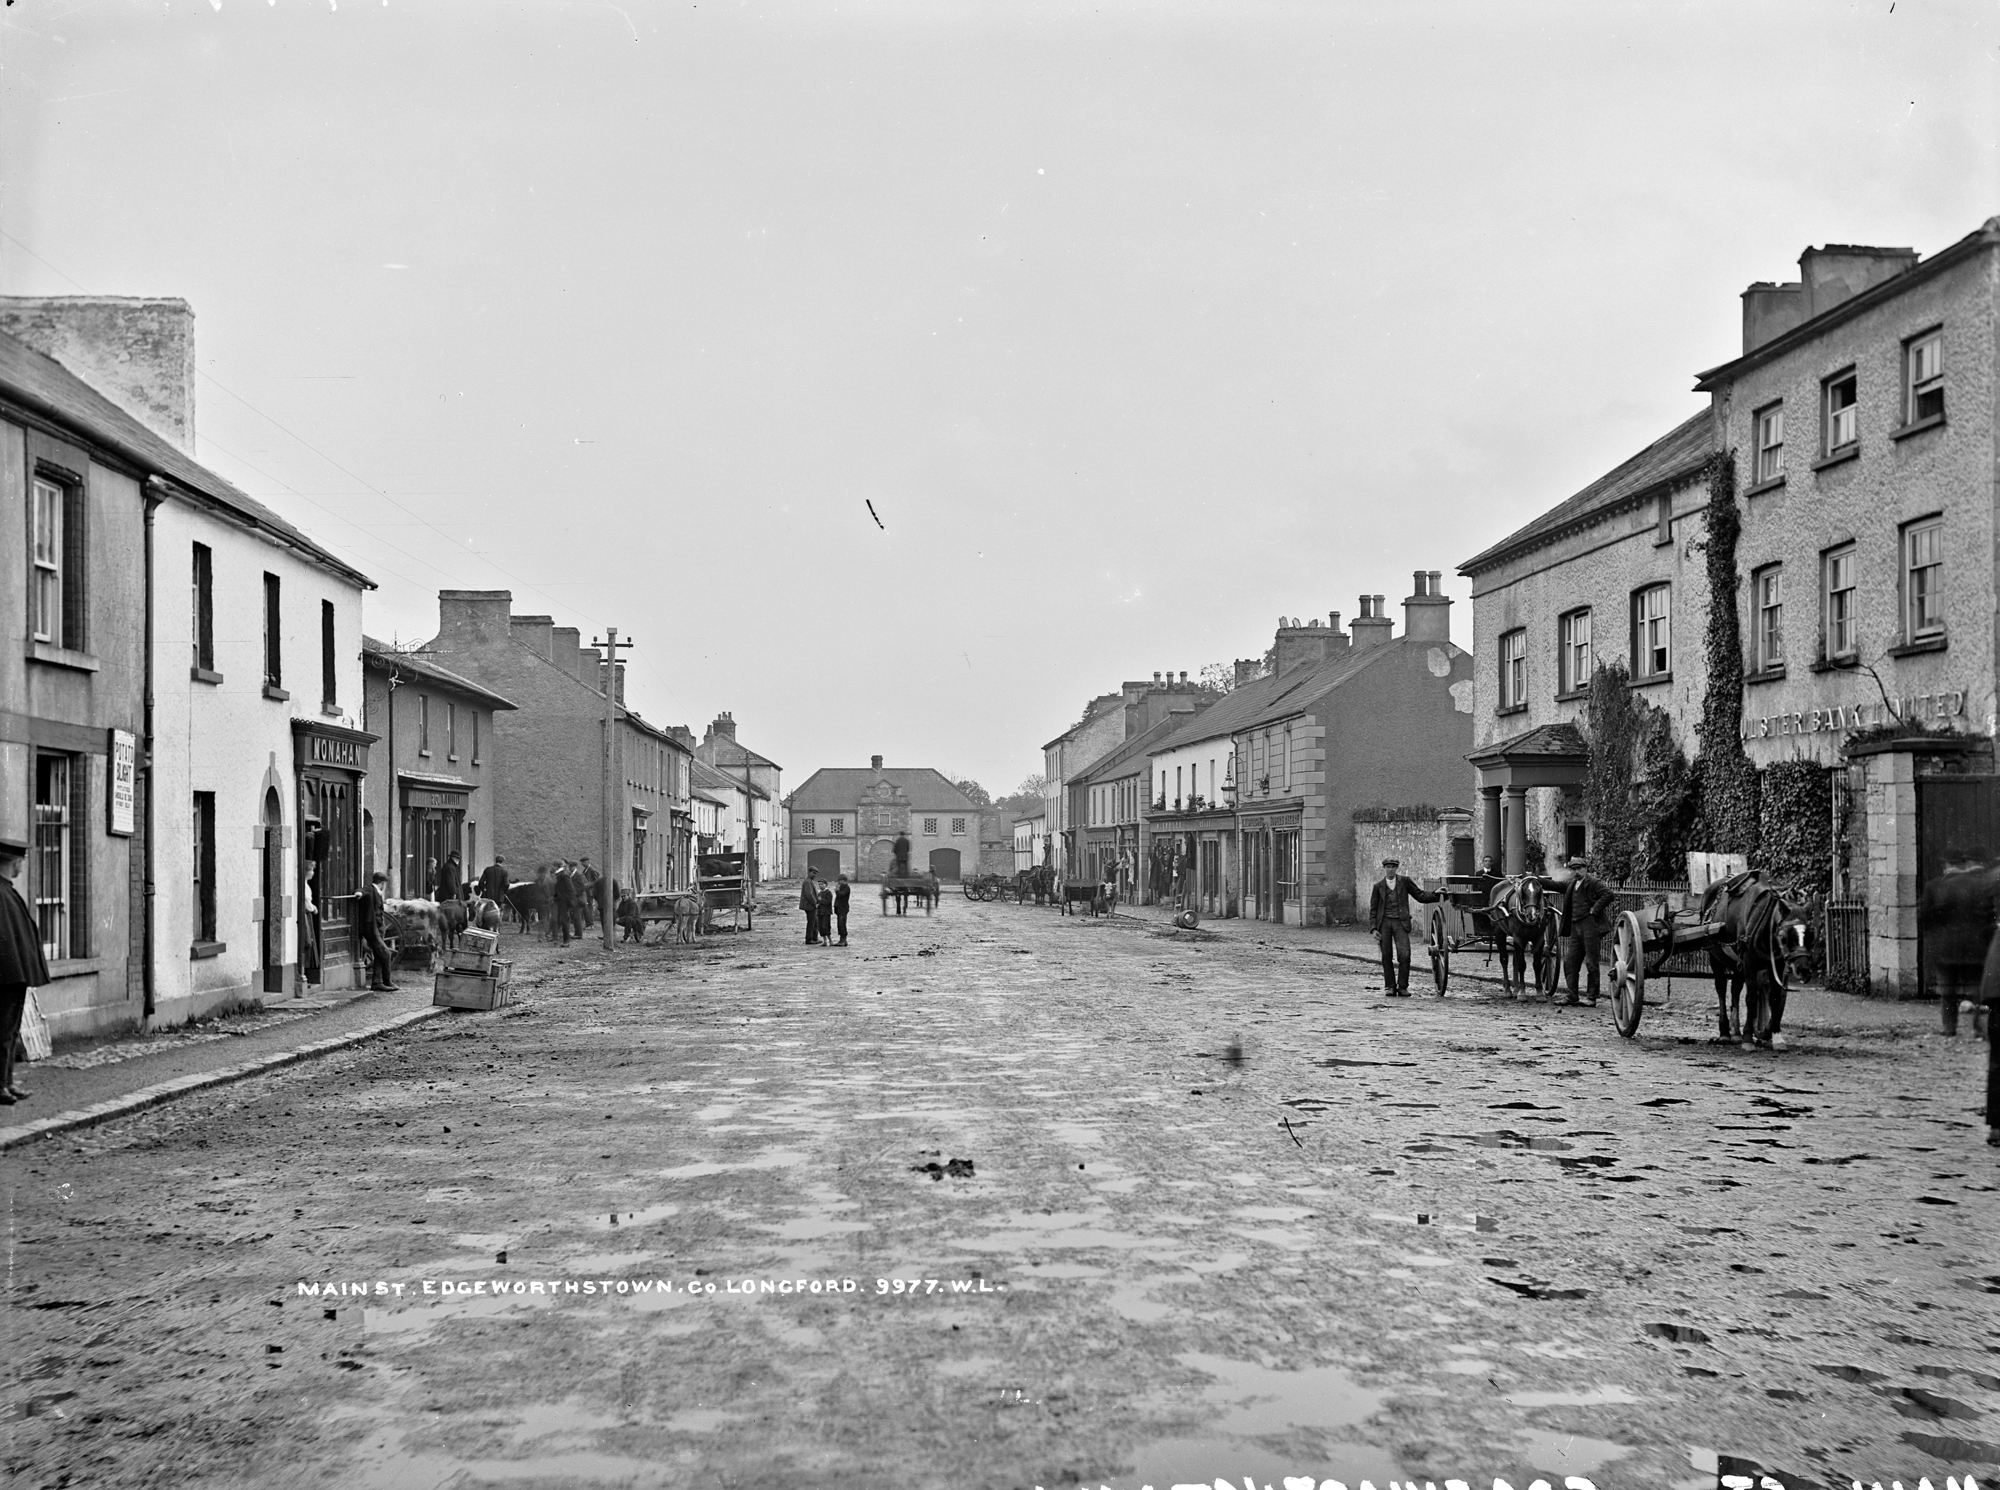 Main St. Edgeworthstown, Co. Longford